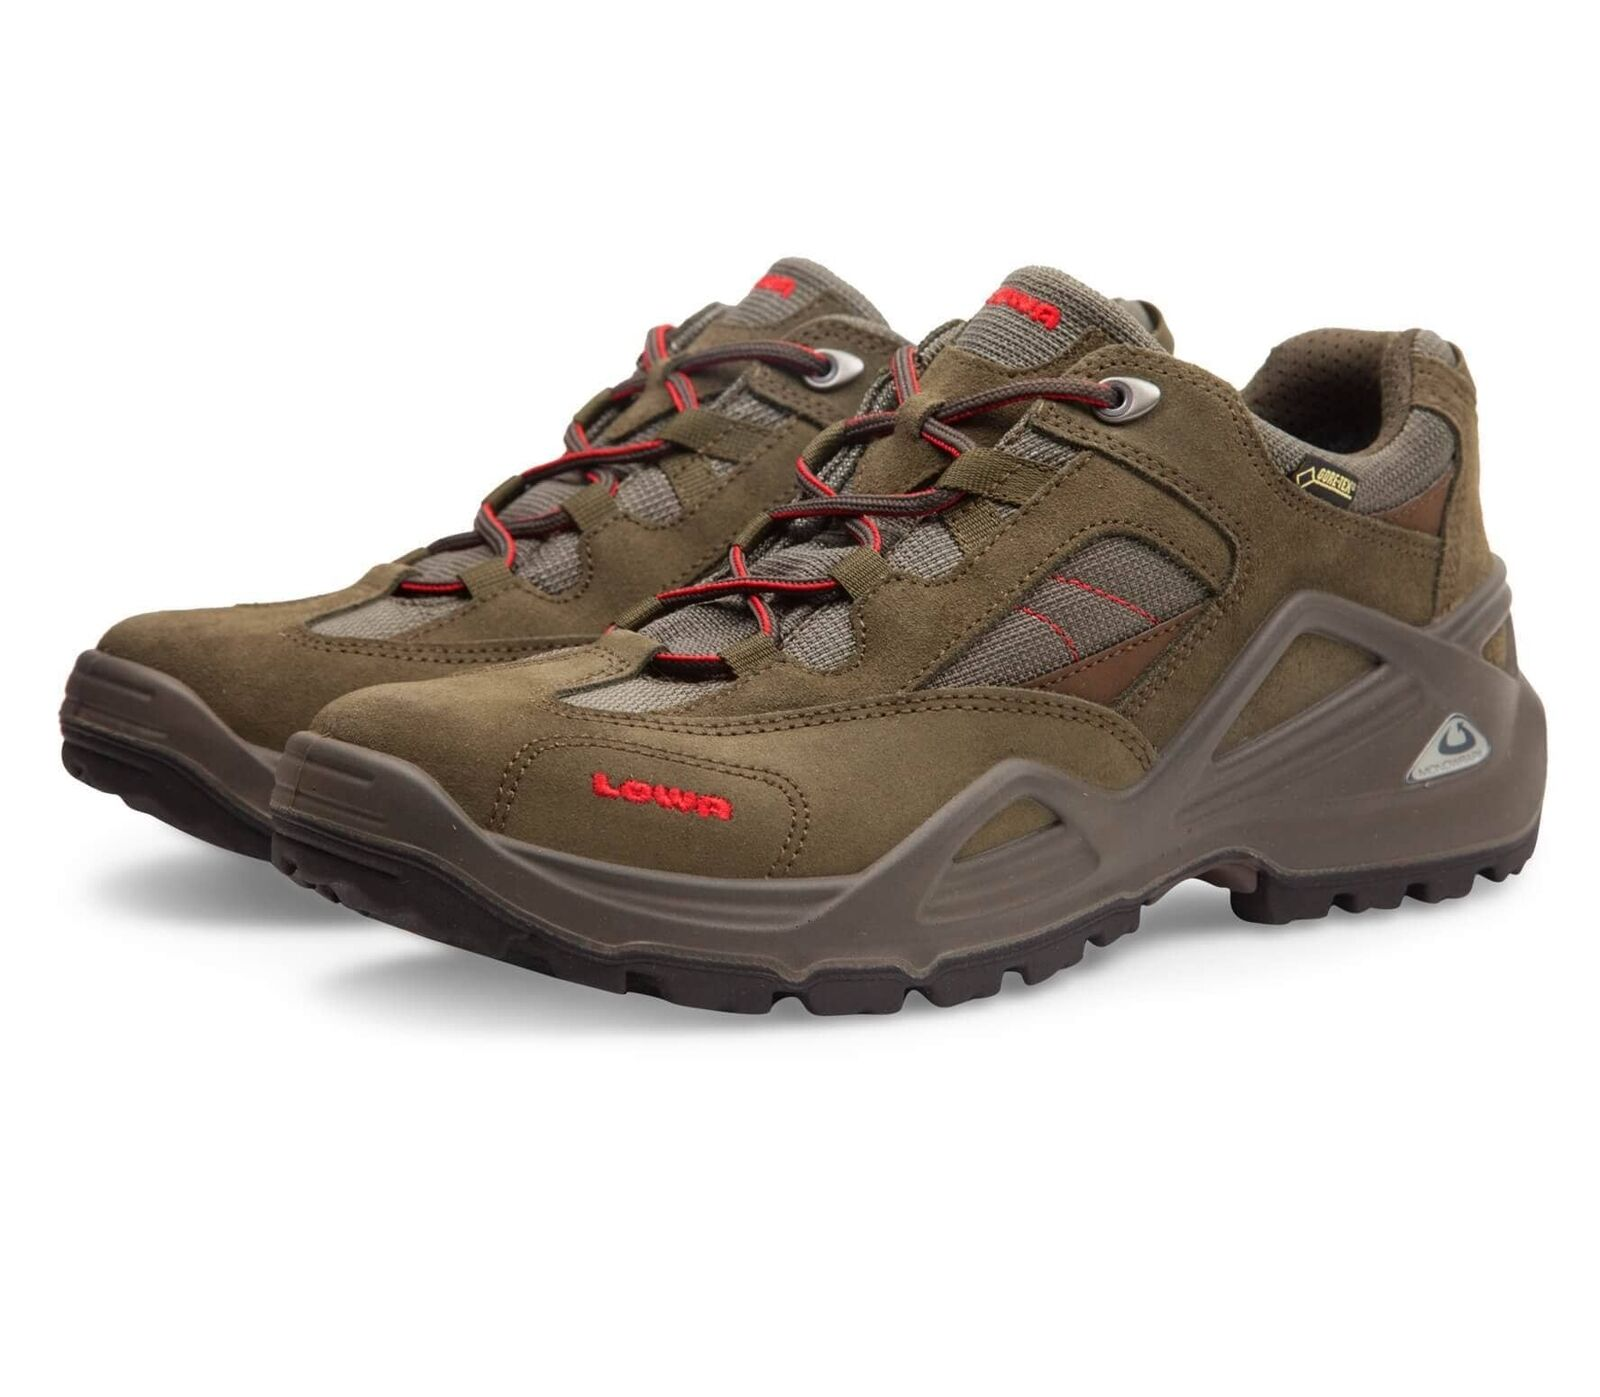 d37faff65fdc Lowa Mens Sirkos Gore-TEX Gore-TEX Gore-TEX Hiking shoes 80b668 ...